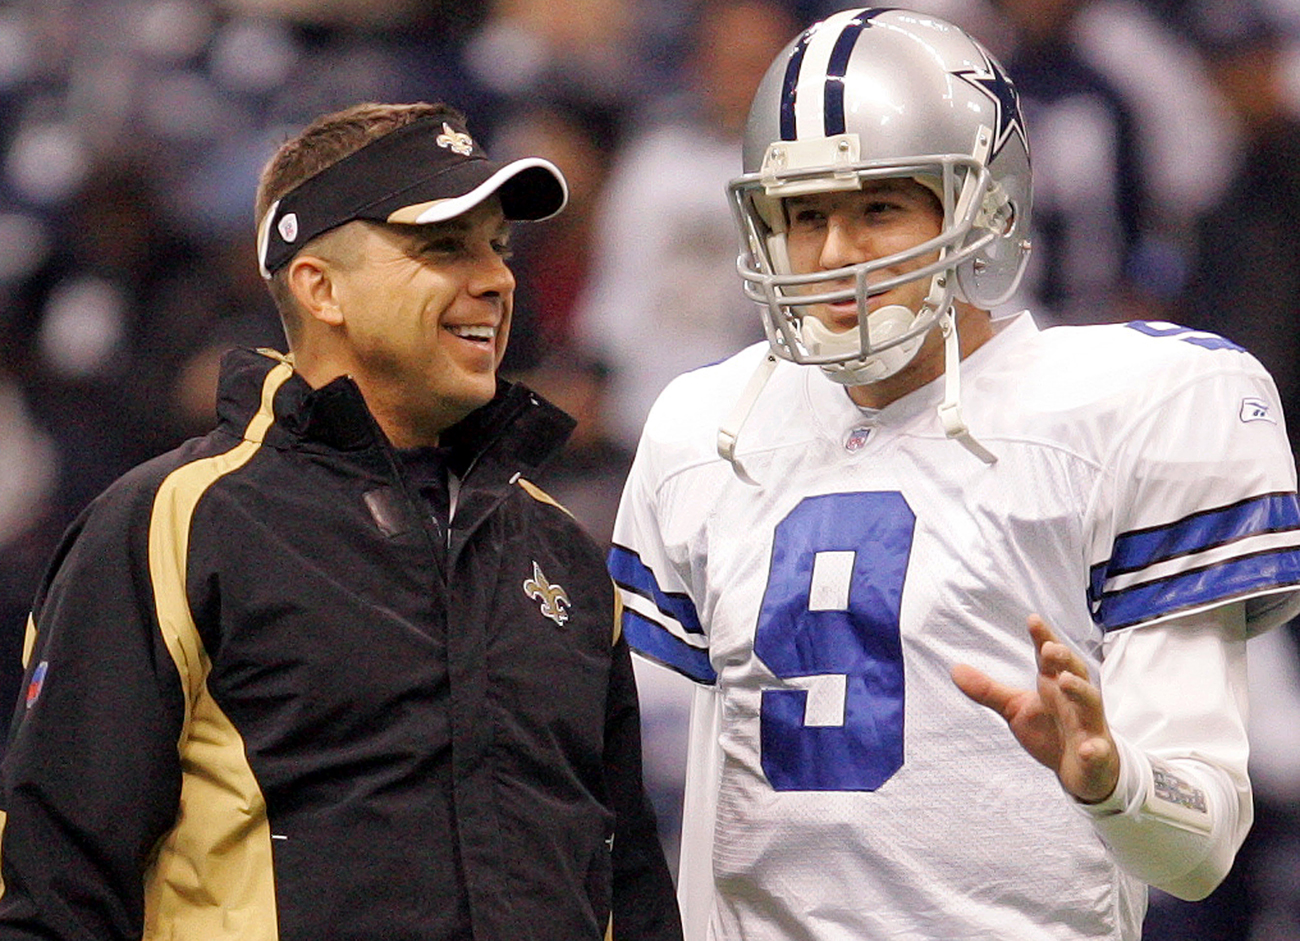 Romo shares a unique relationship with Saints coach Sean Payton, who served as Cowboys quarterback coach when the team drafted him.